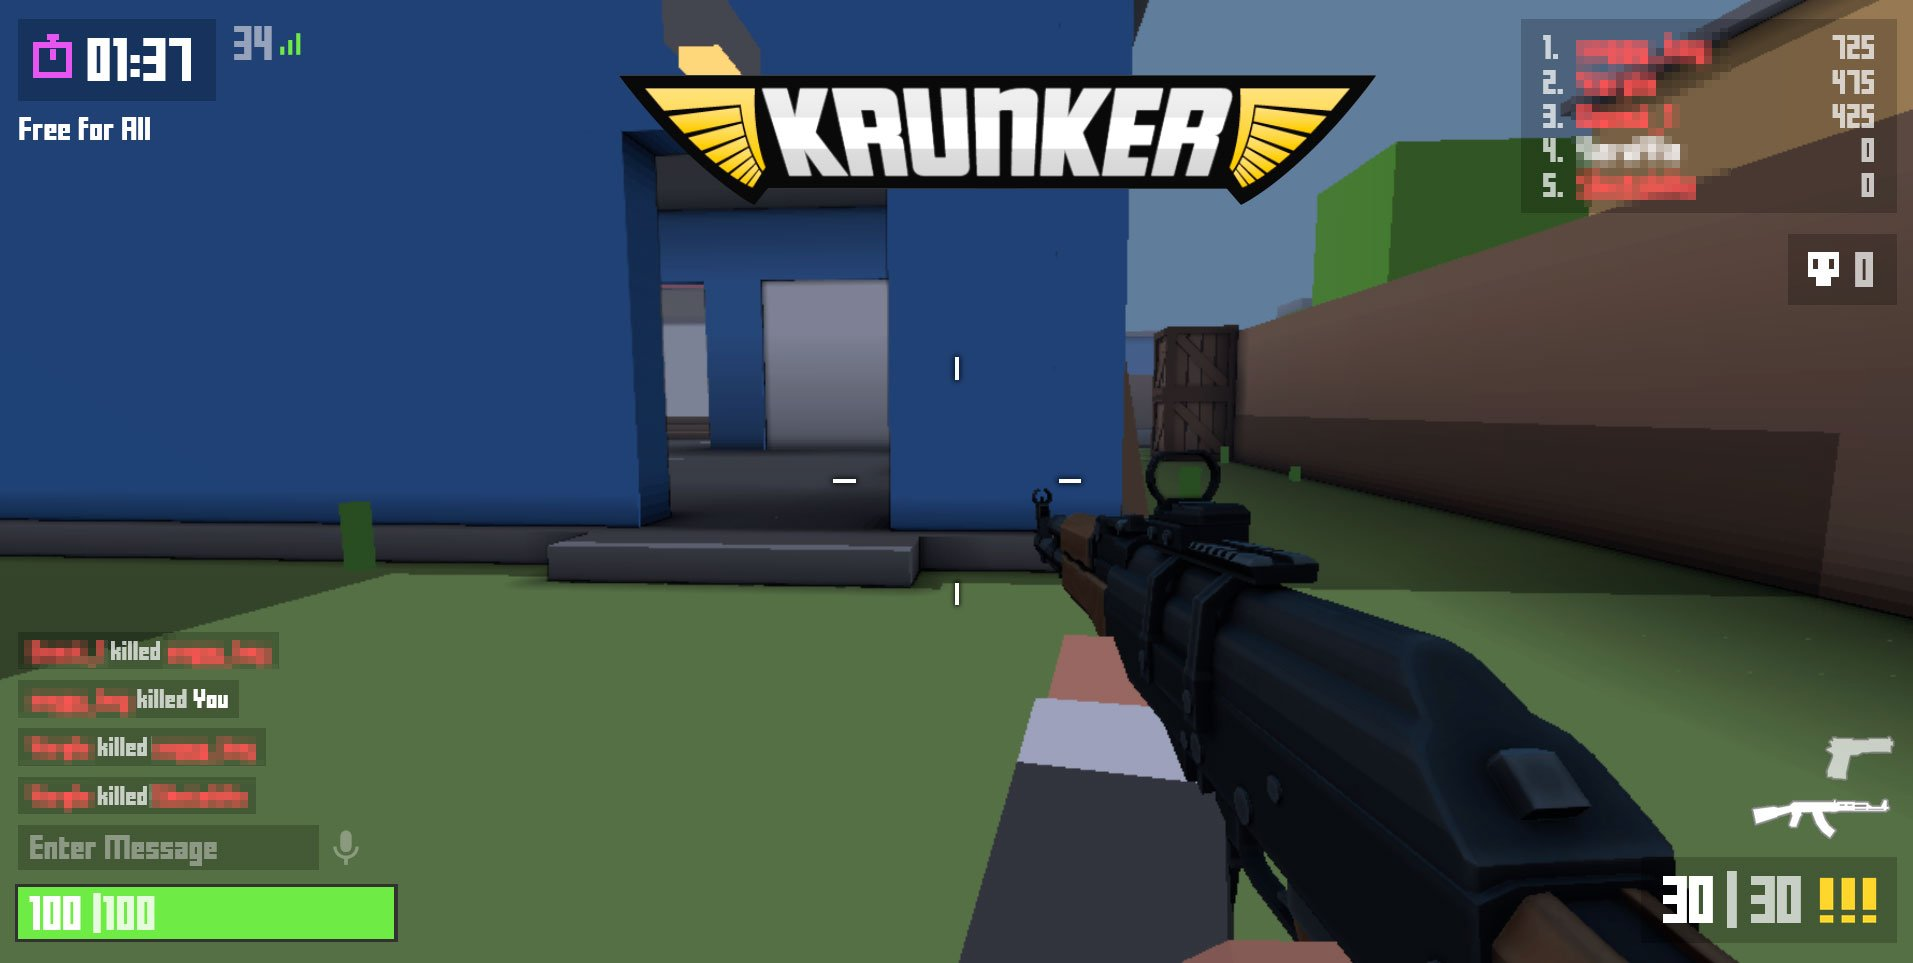 The Best Fortnite Game In Roblox Krunker Has Landed And It S Got Our Kids In The Crosshairs